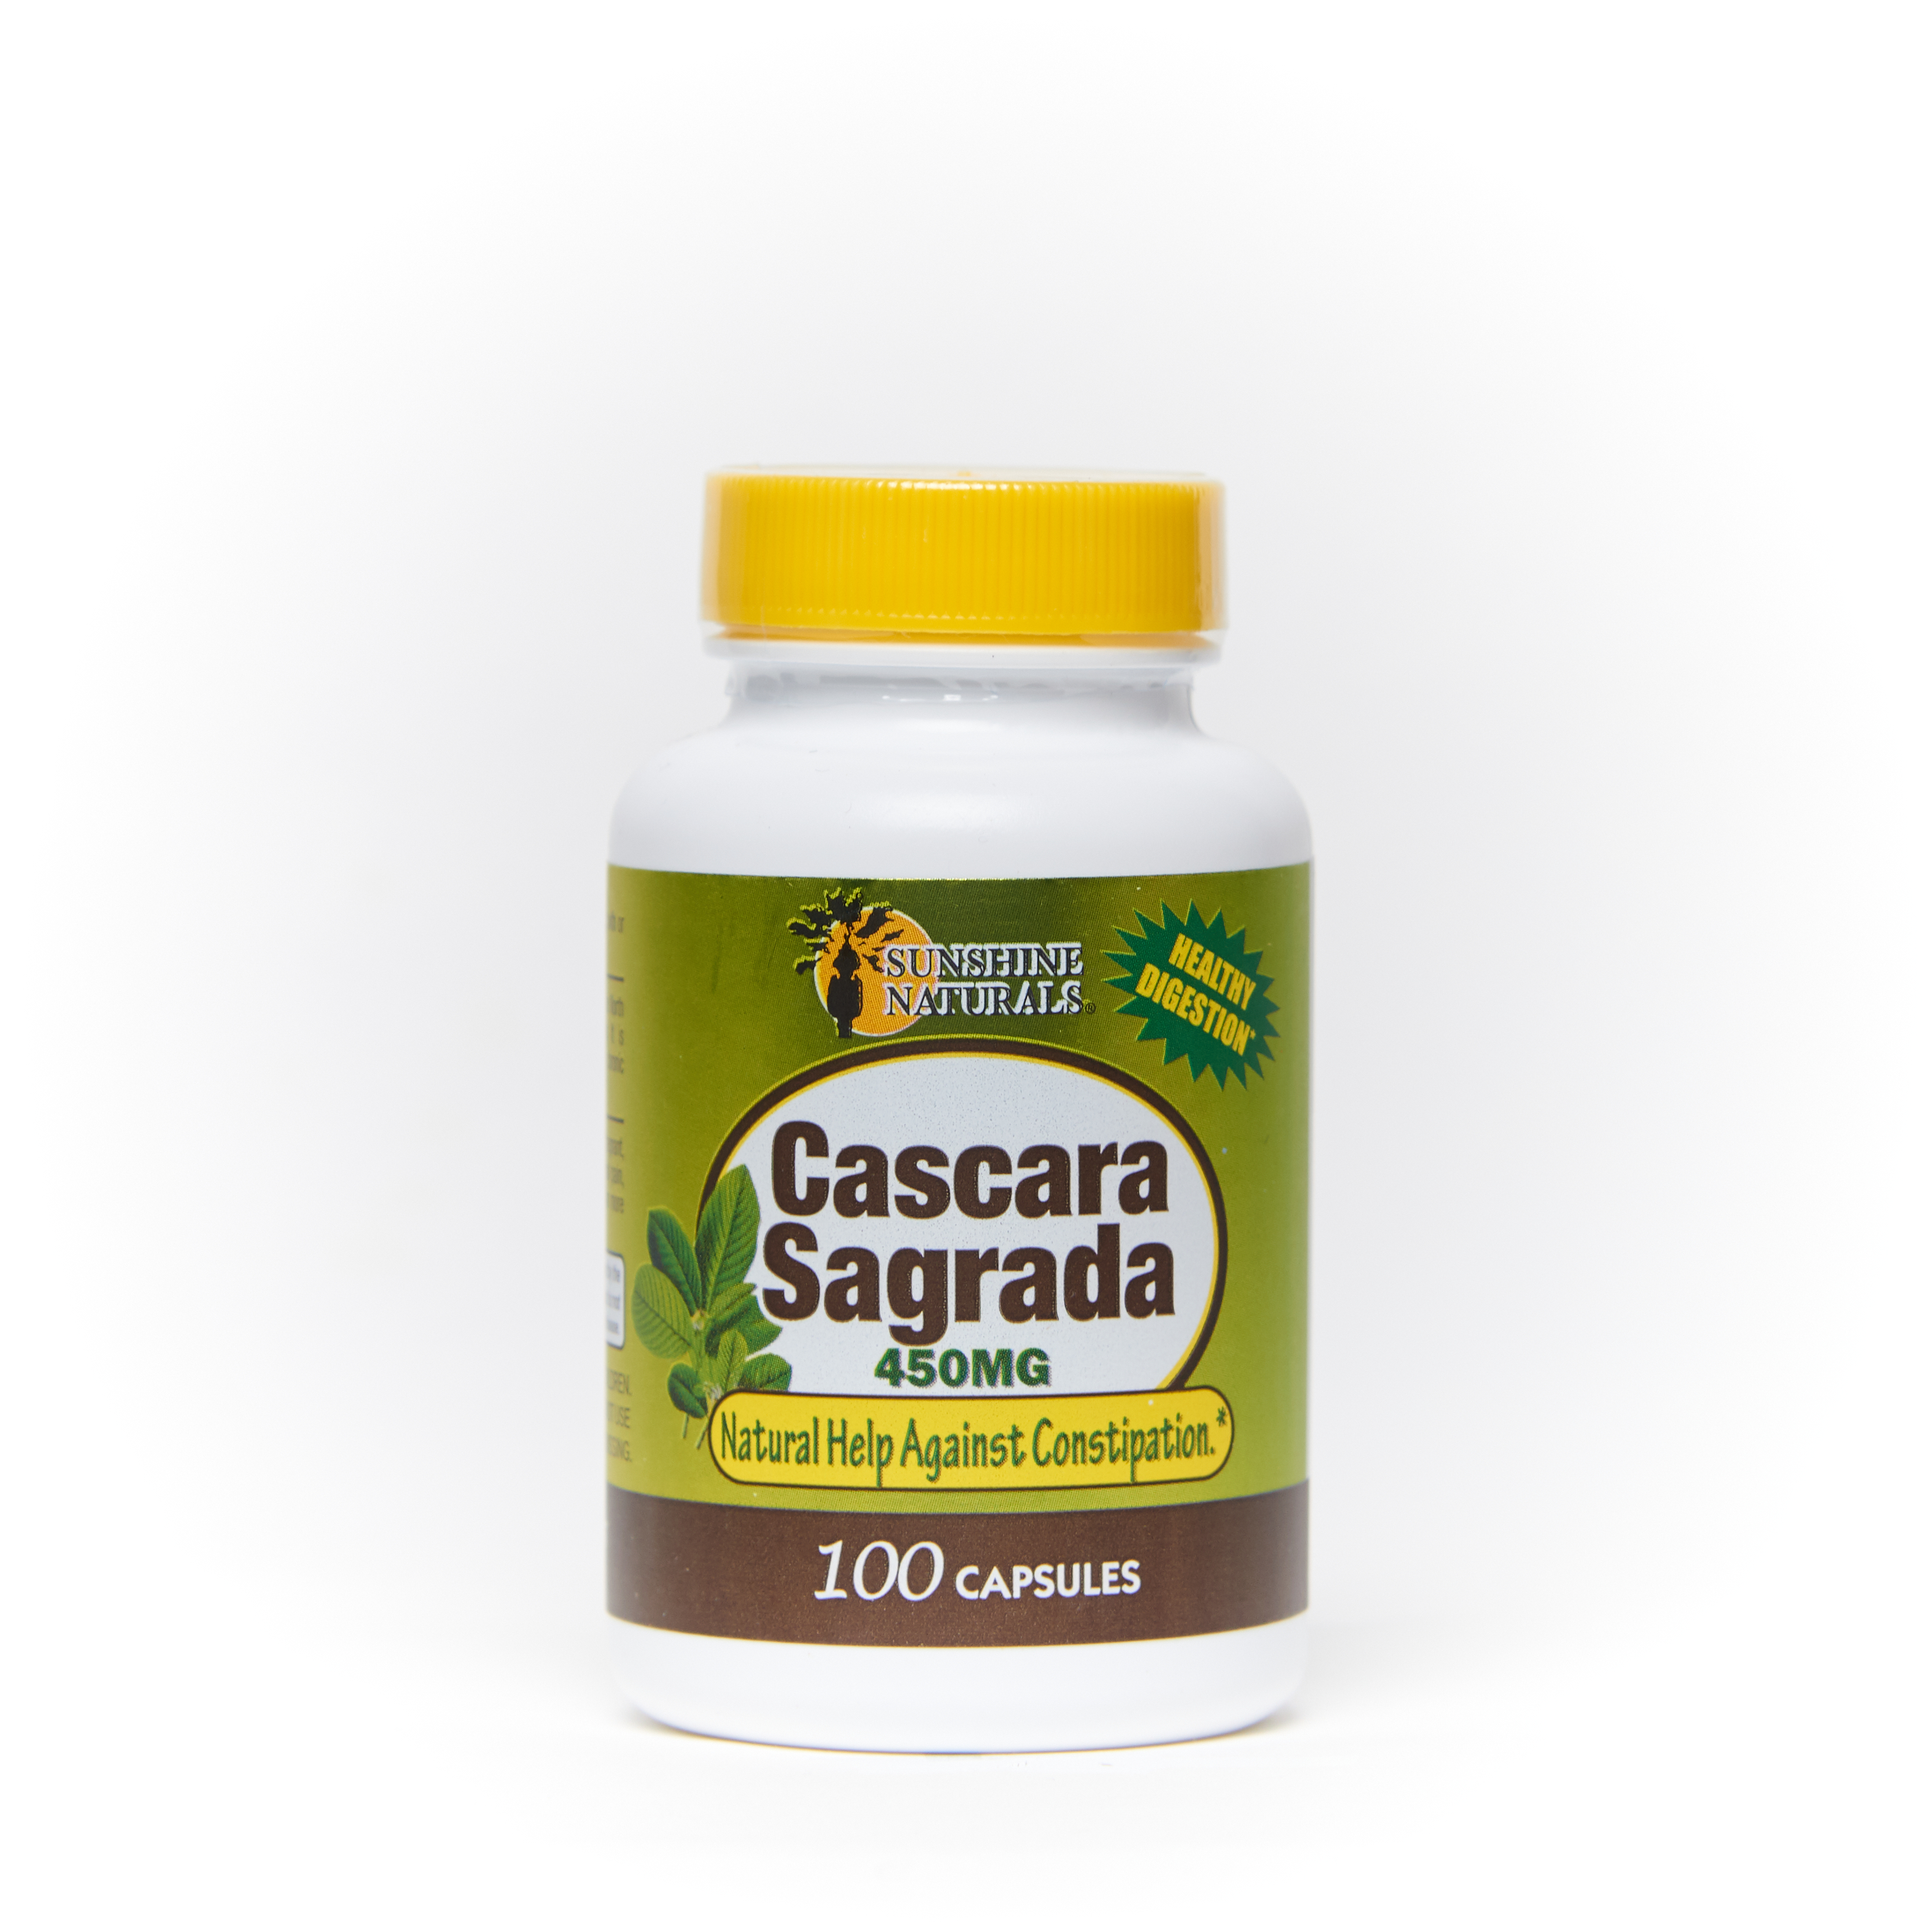 Cascara Sagrada 450mg 100 Capsules